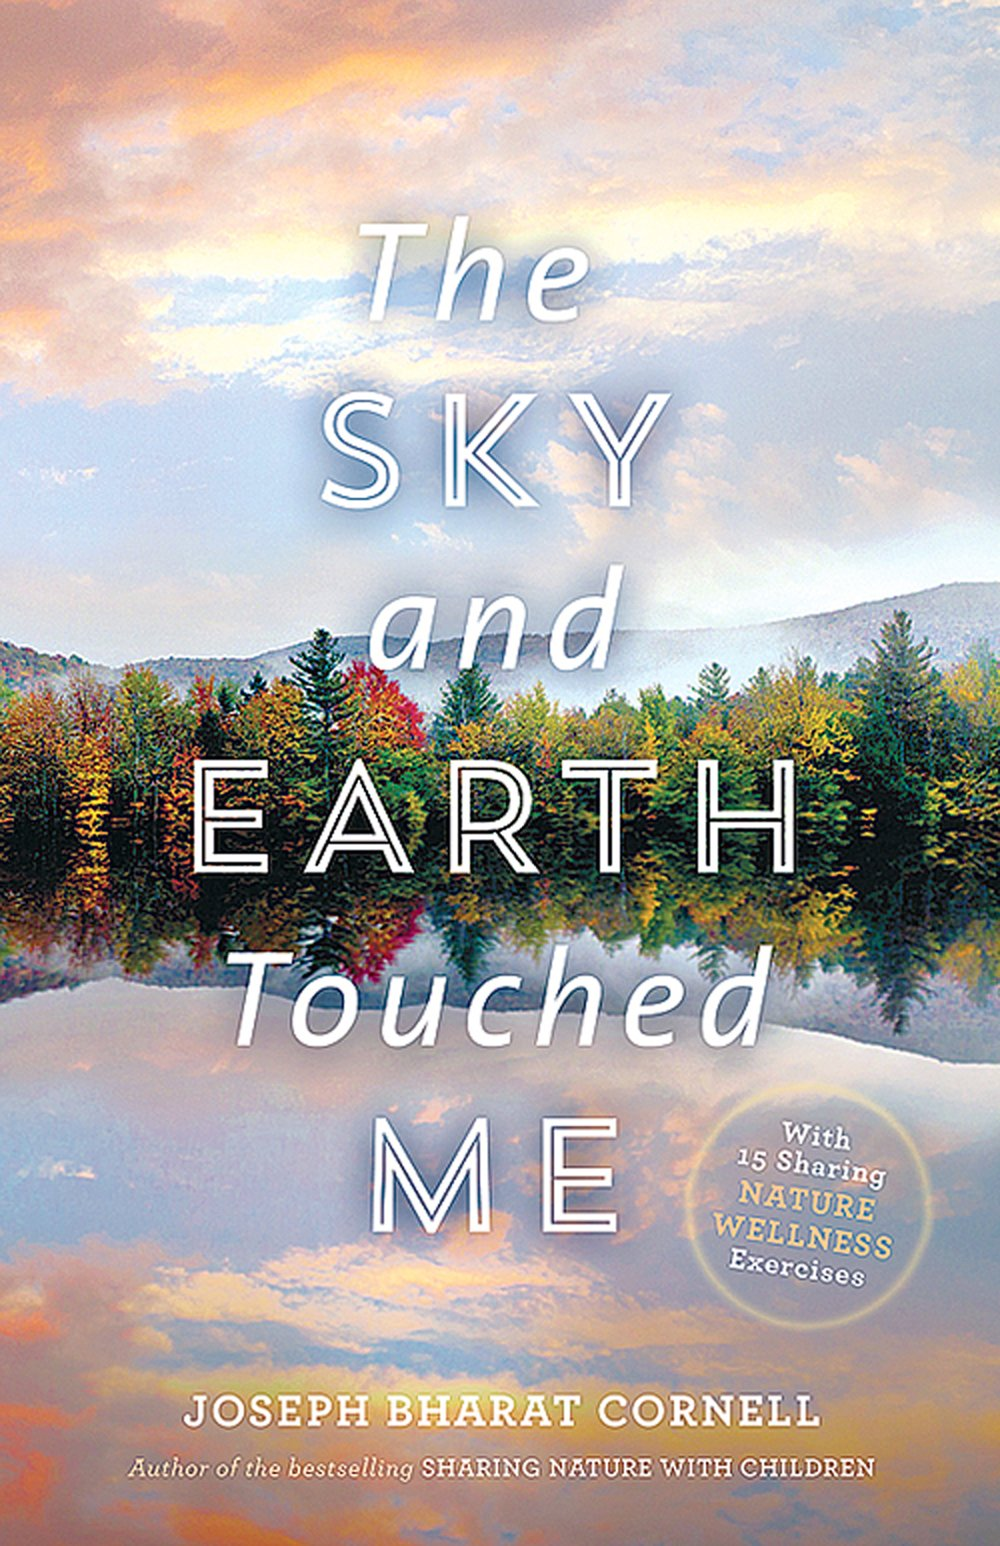 Sky and Earth Touched Me (The): Sharing Nature Wellness Exercises